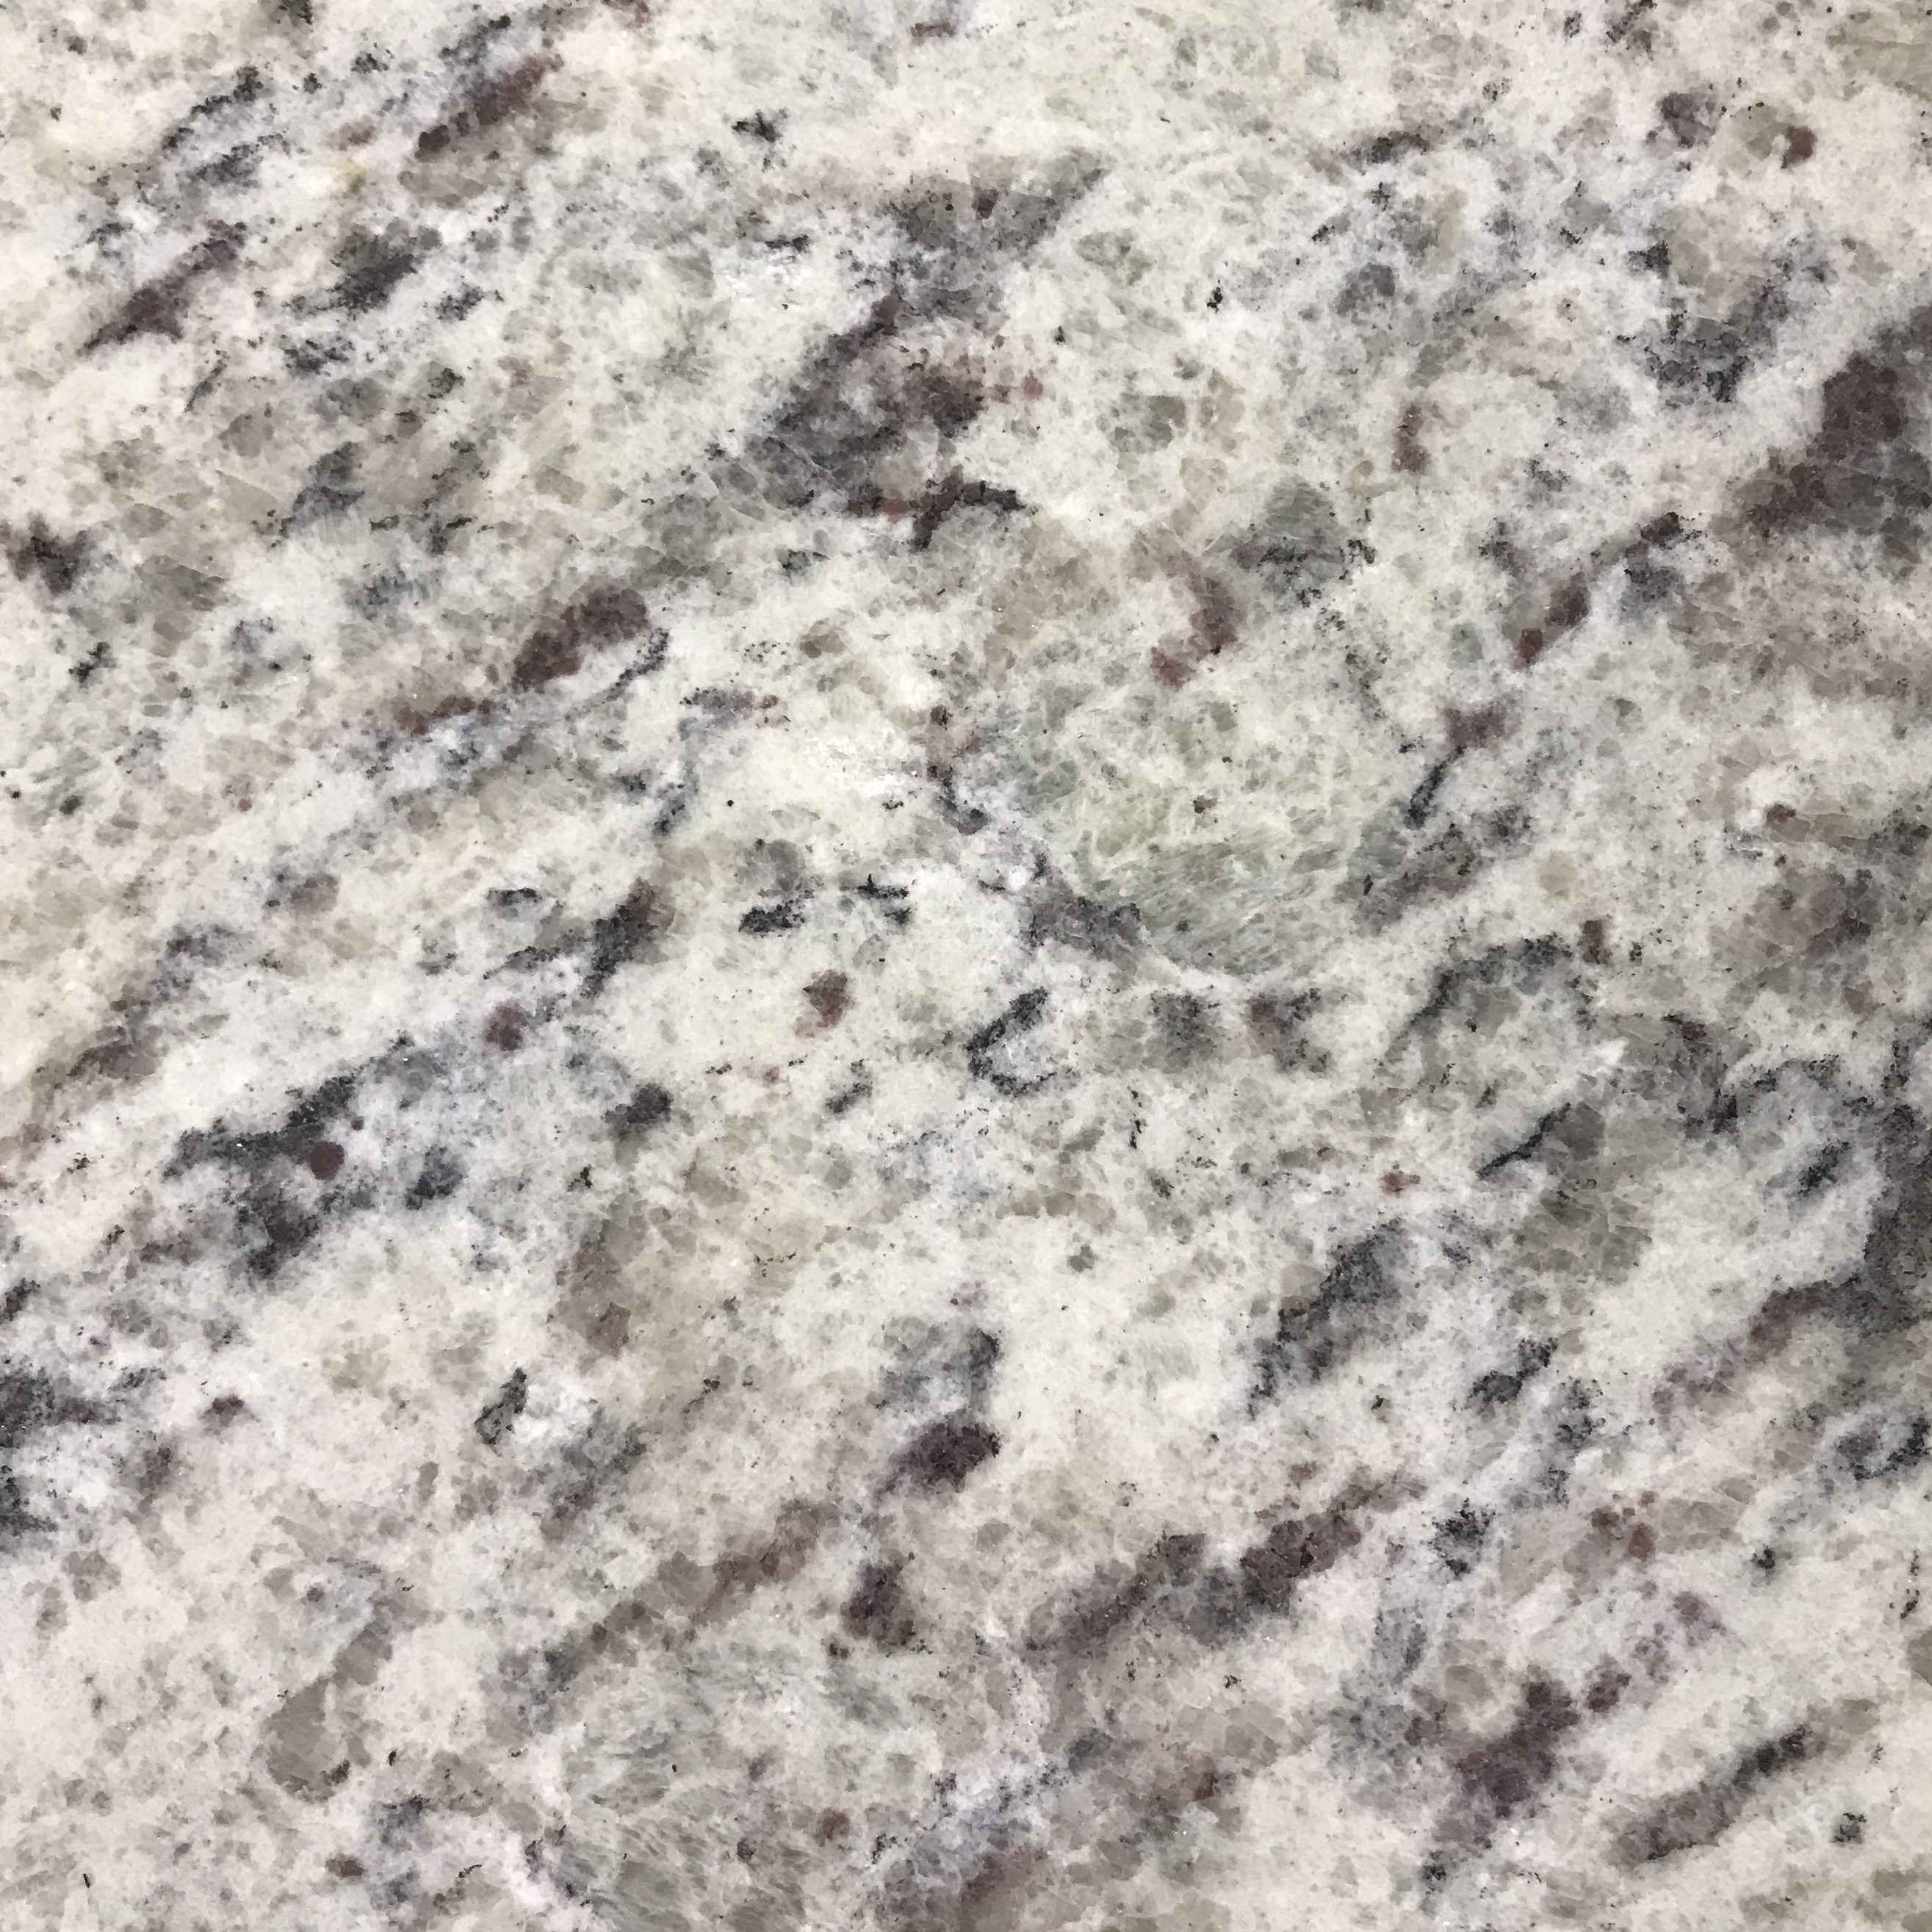 Granite Countertops Amp Surface Slabs In Wetumpka Al